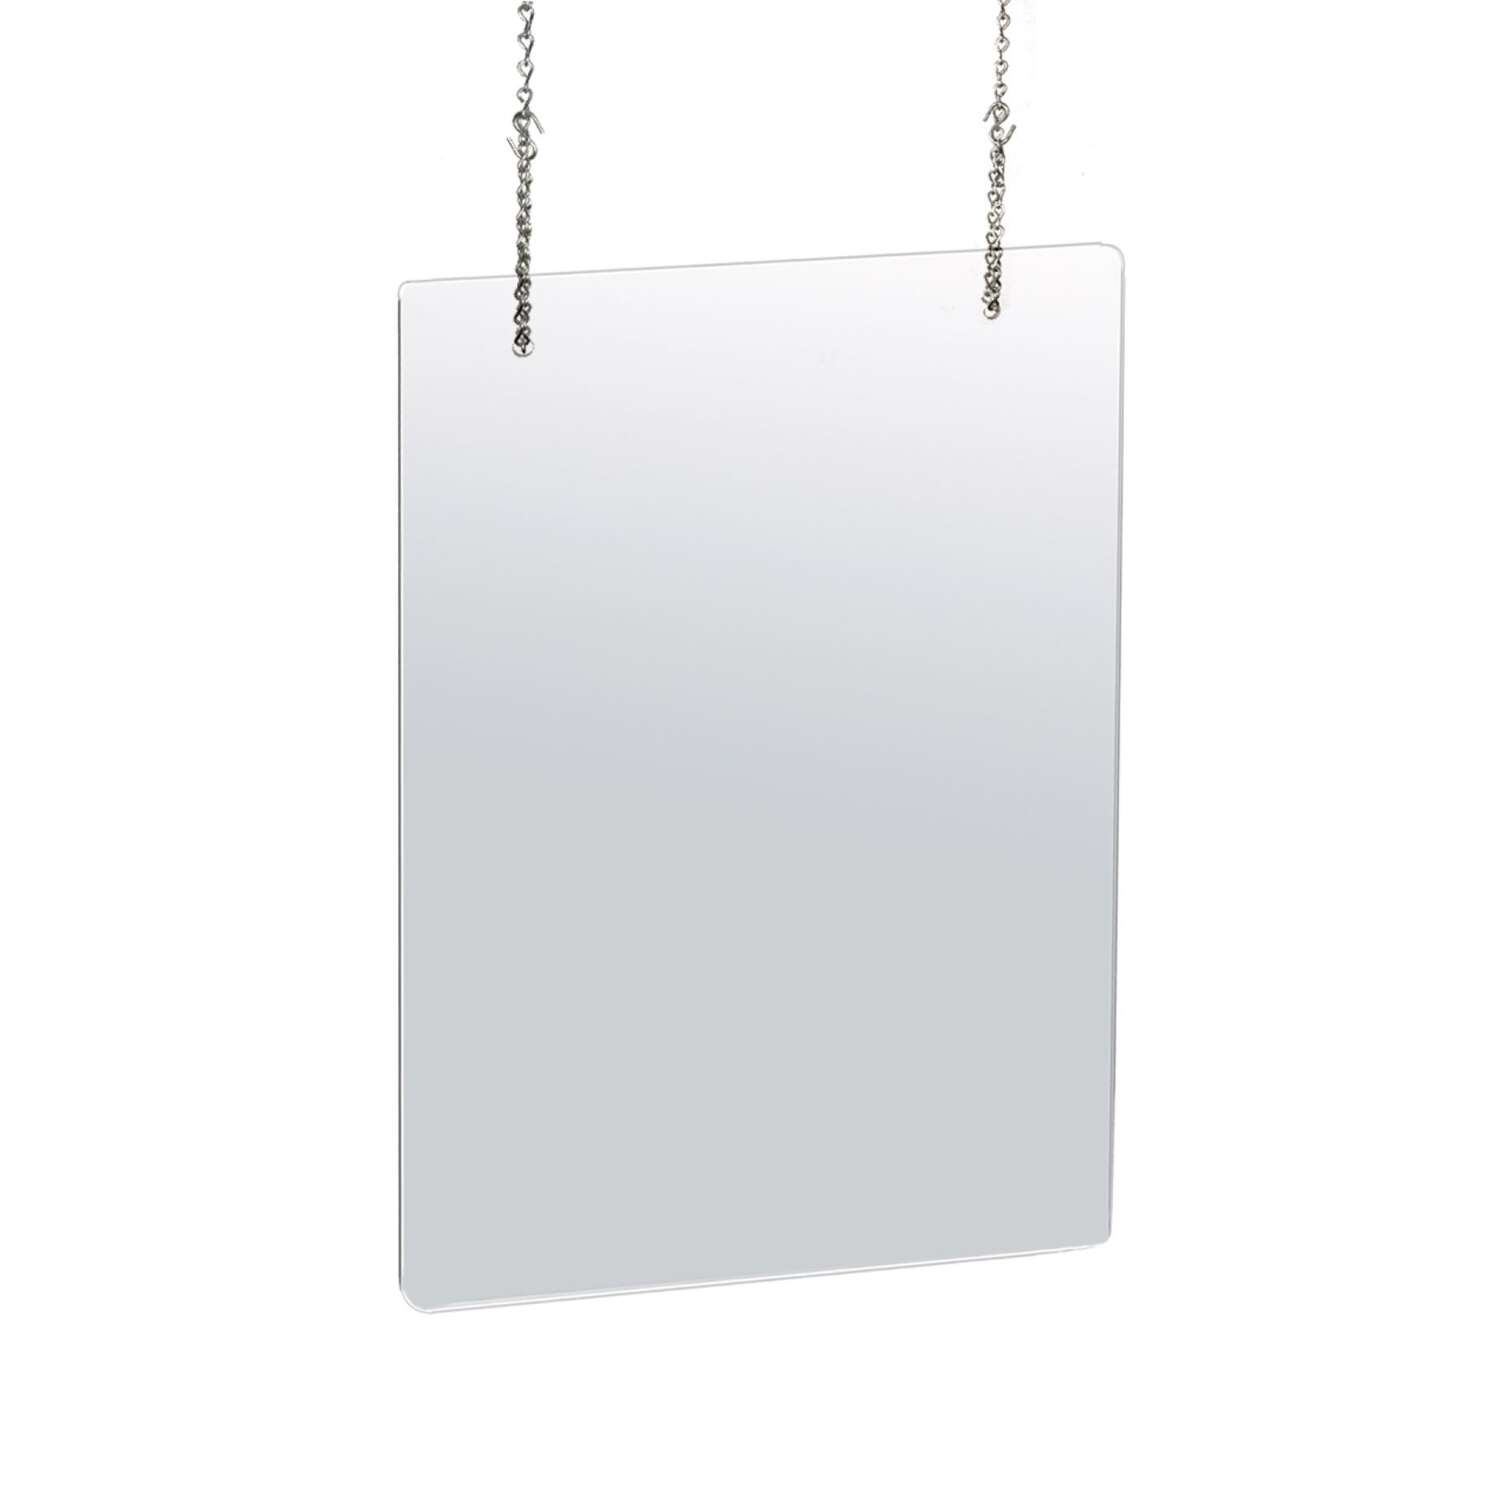 Azar  31.5 in. H x 23.5 in. W Clear  Hanging Cashier Shield  2 pk